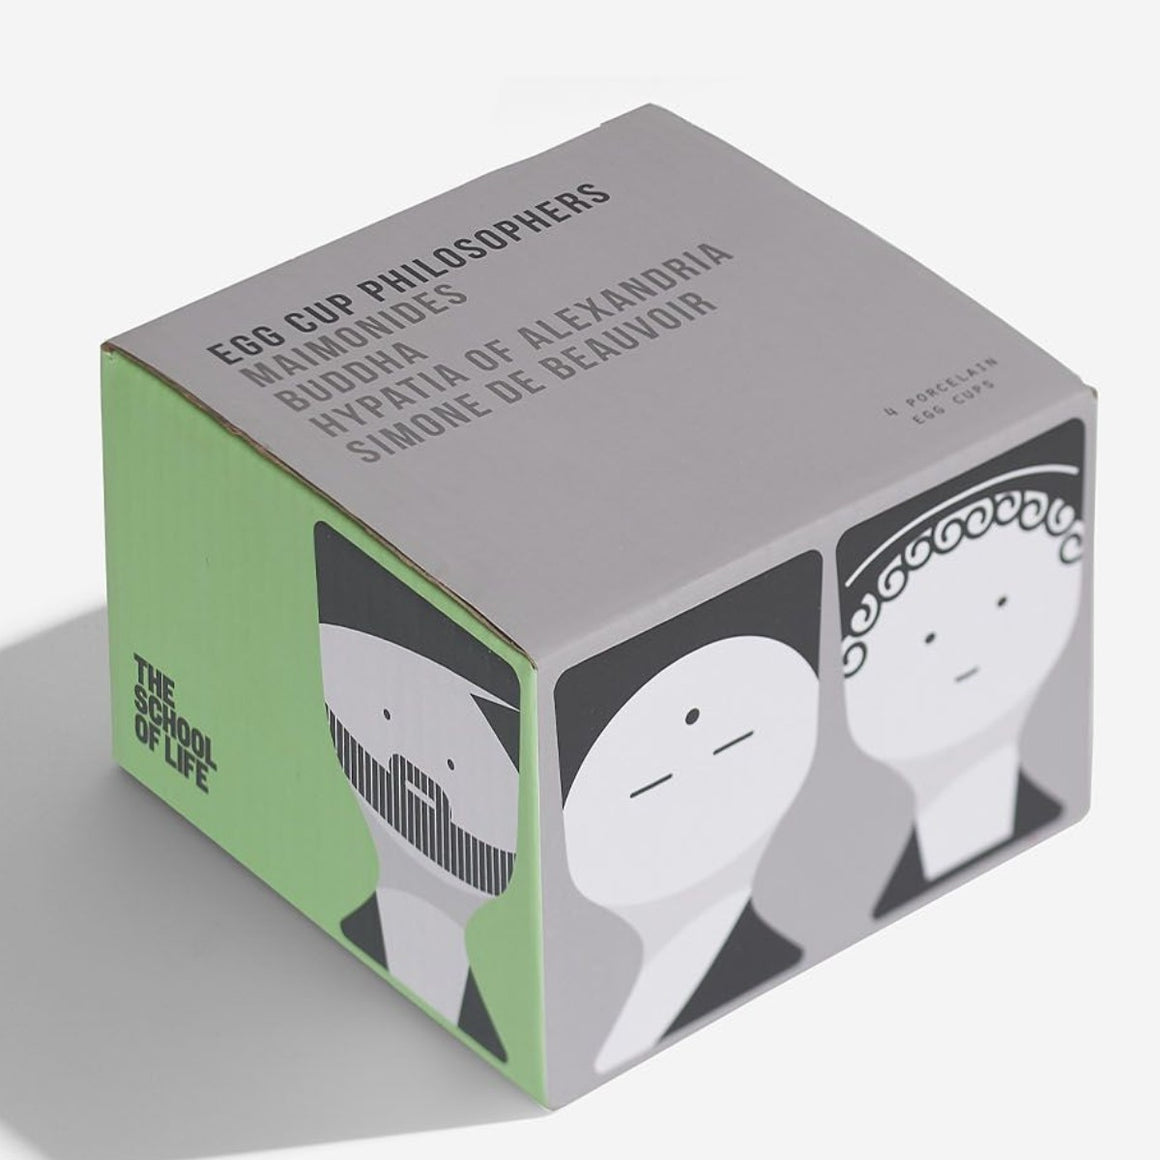 Image featuring a grey and green box with the top of the box includes the words Egg cup Philosophers Maimonides, Buddha, Hypatia of Alexandria and Simone De Beauvoir - around the bottom half of the box features graphic illustrations of the listed Philosophers